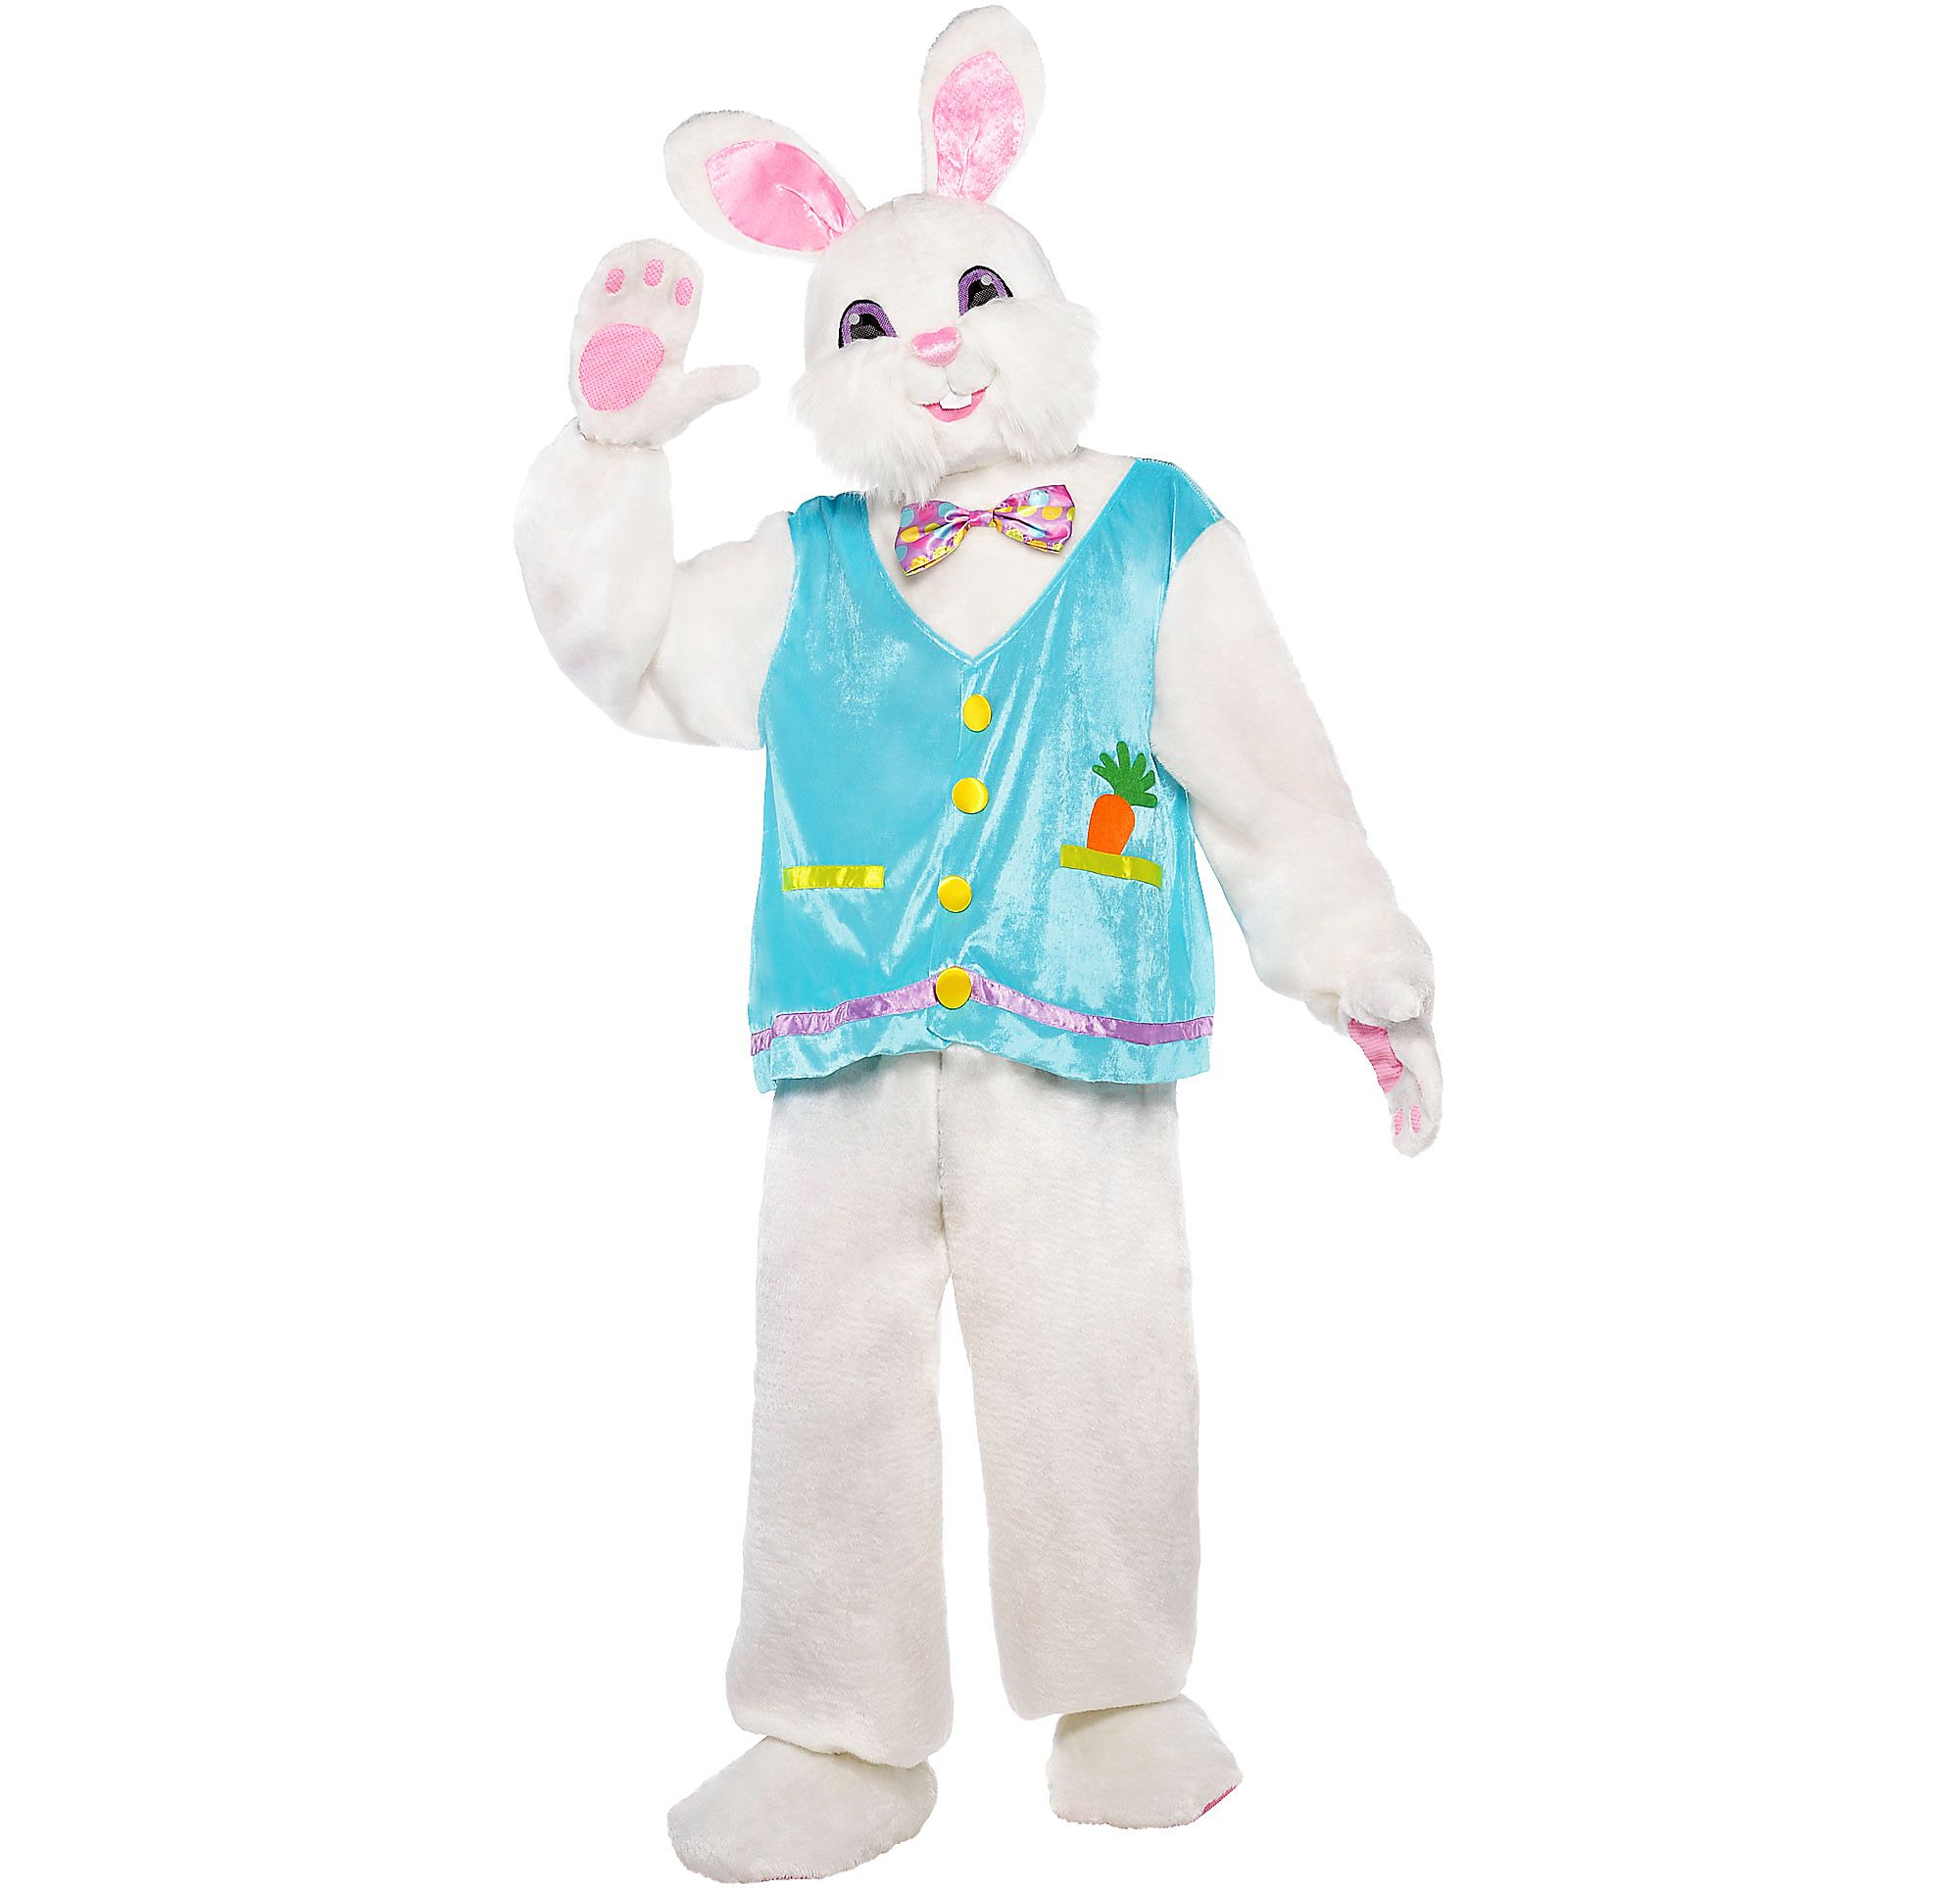 Adult Easter Bunny Costume Complete With Headpiece Shirt And Pants